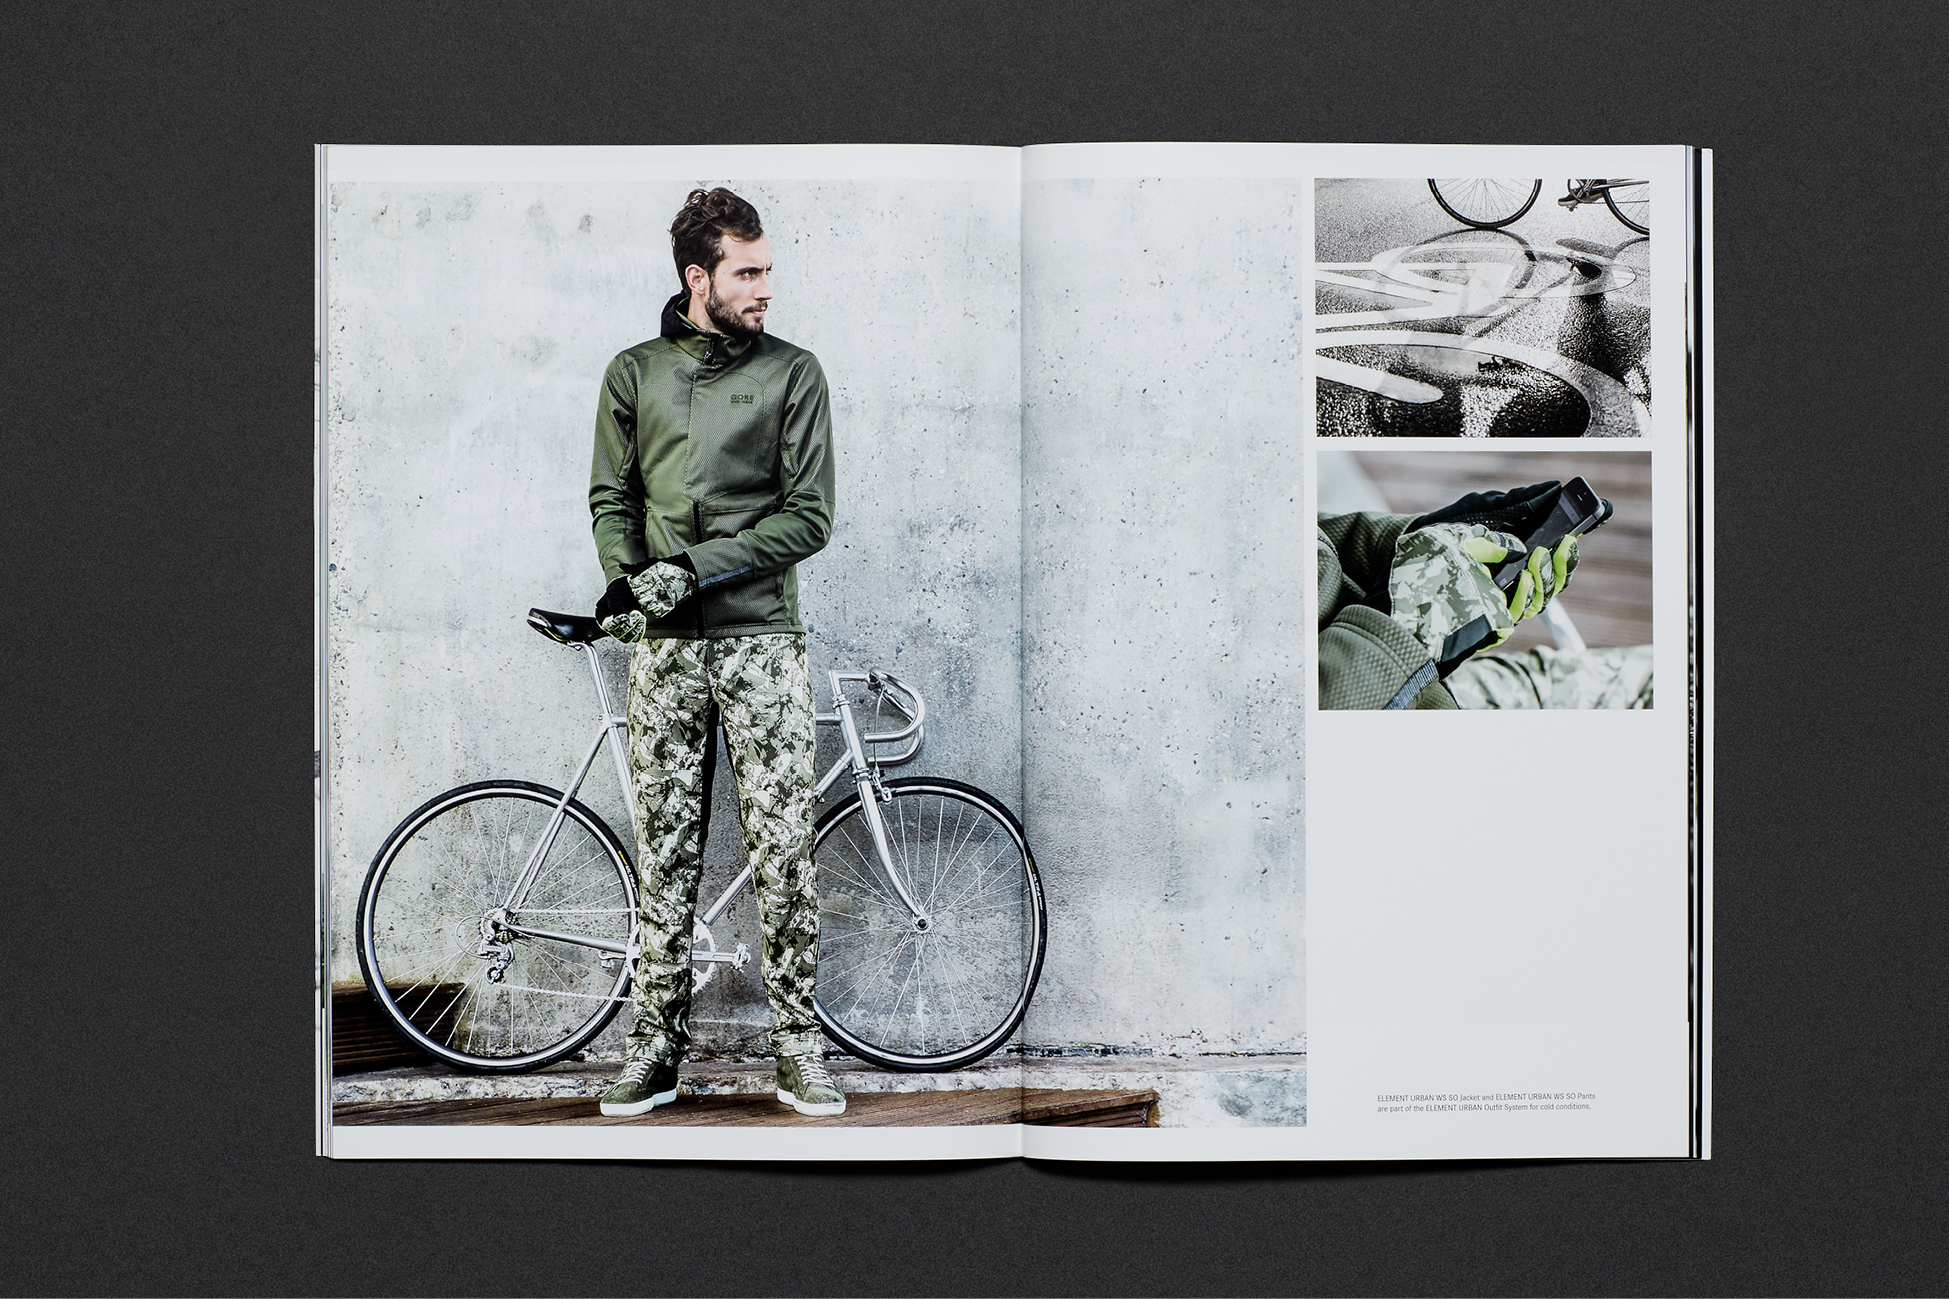 Gore Catalogues | We are ÖPPET